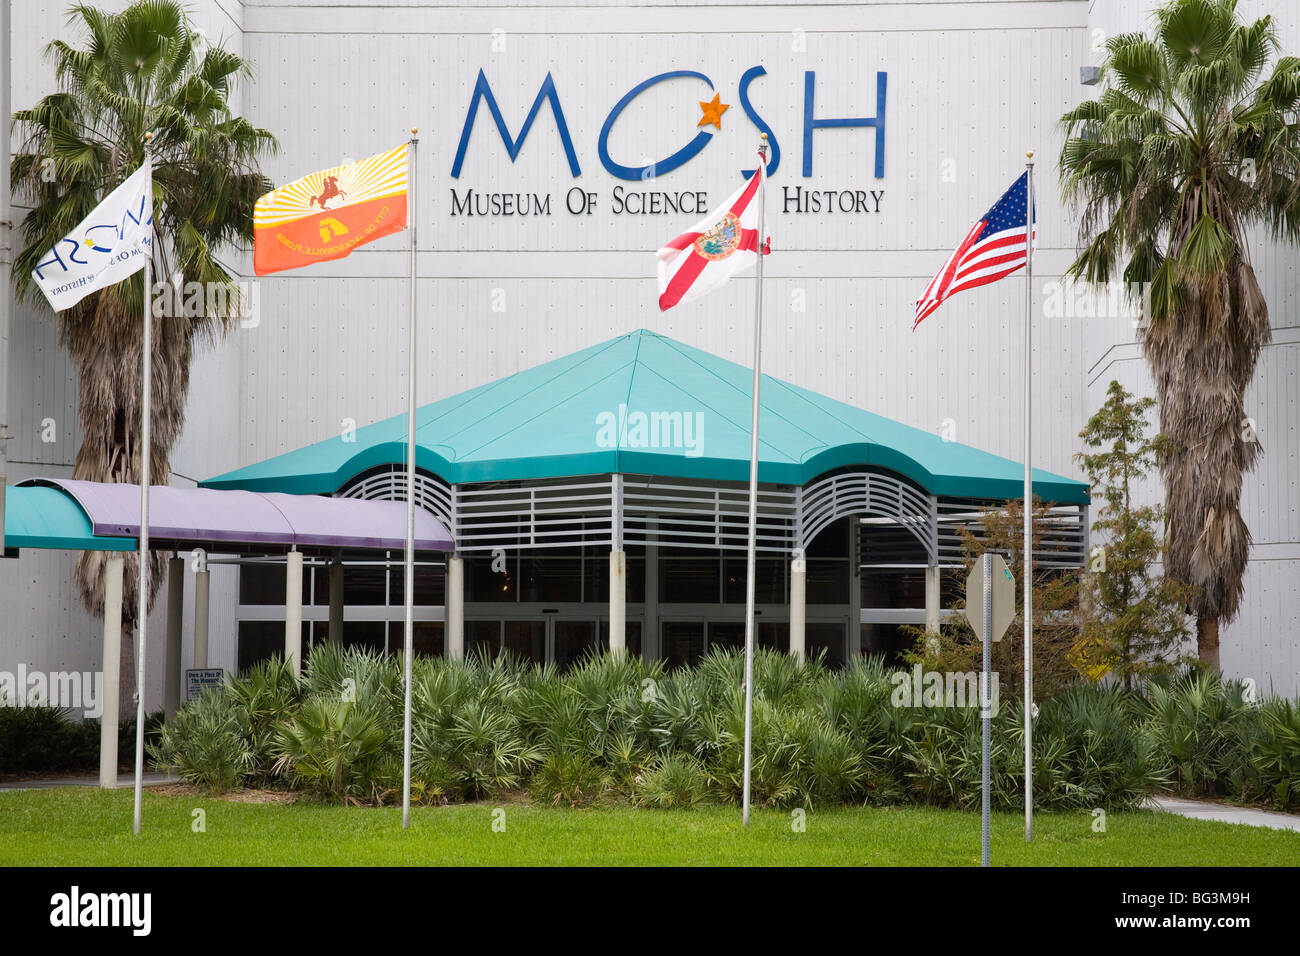 Museum of Science and History, Jacksonville, Florida, United States of America, North America - Stock Image